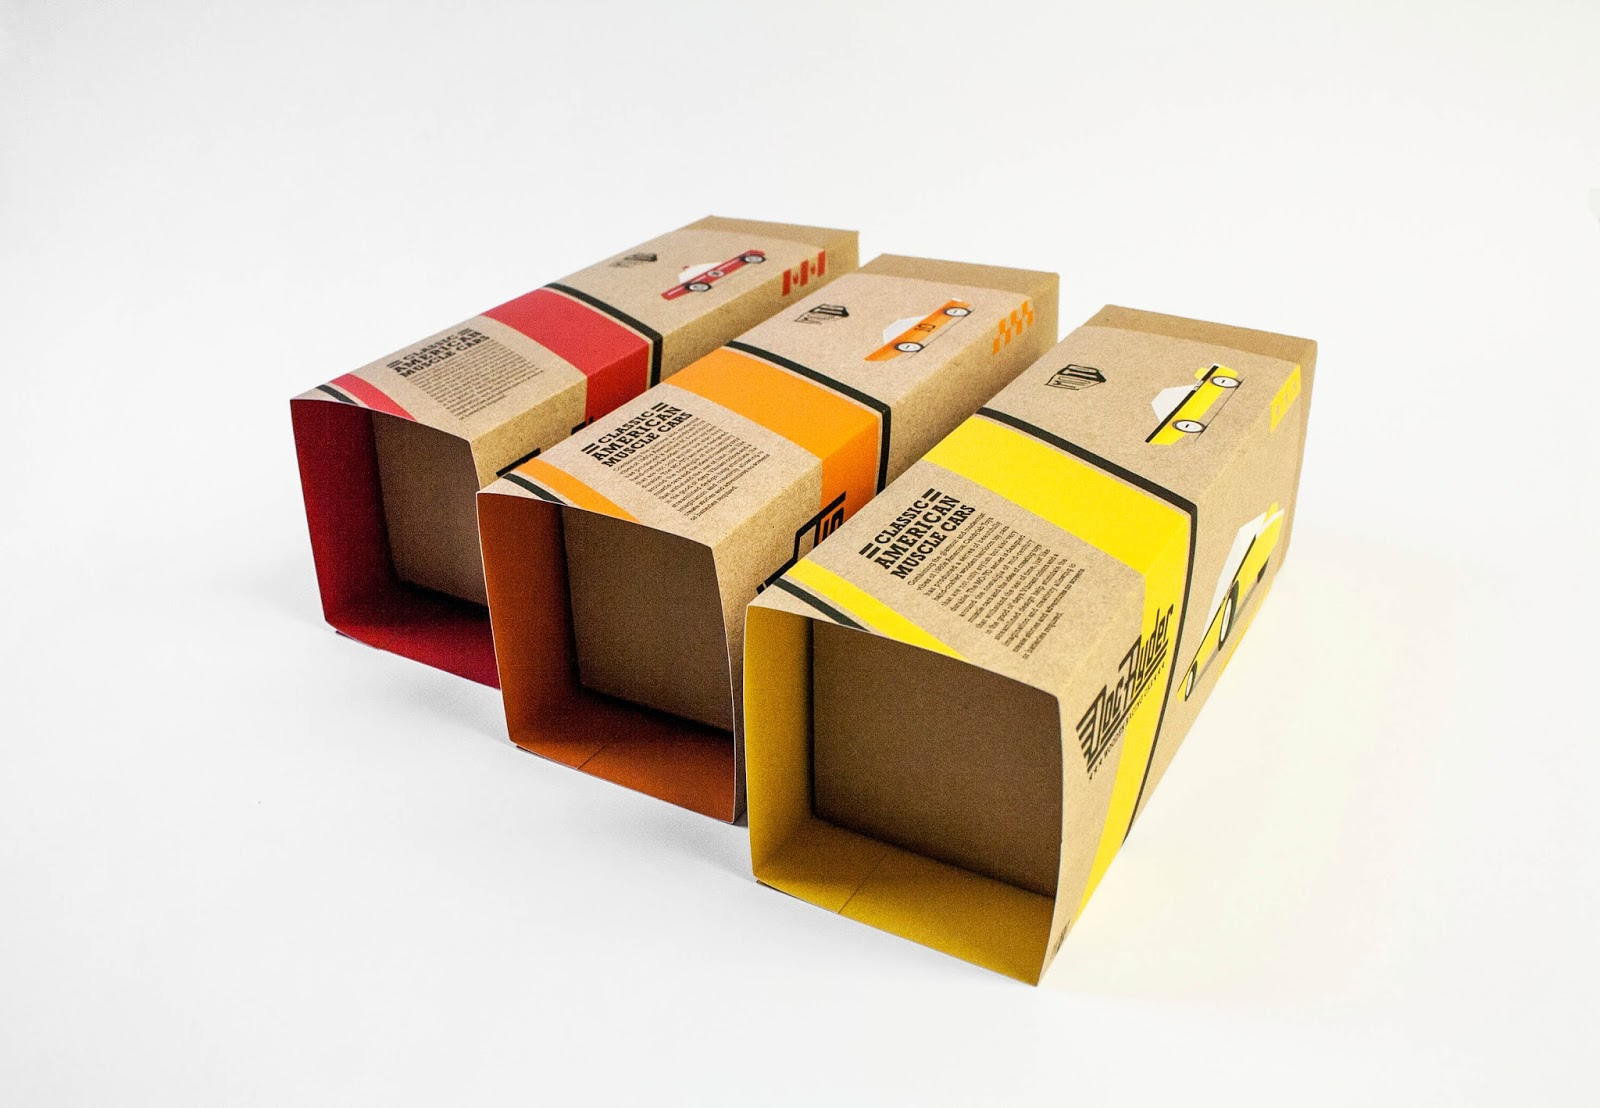 Candylab Toys Vintage Wooden Cars Student Project On Packaging Of